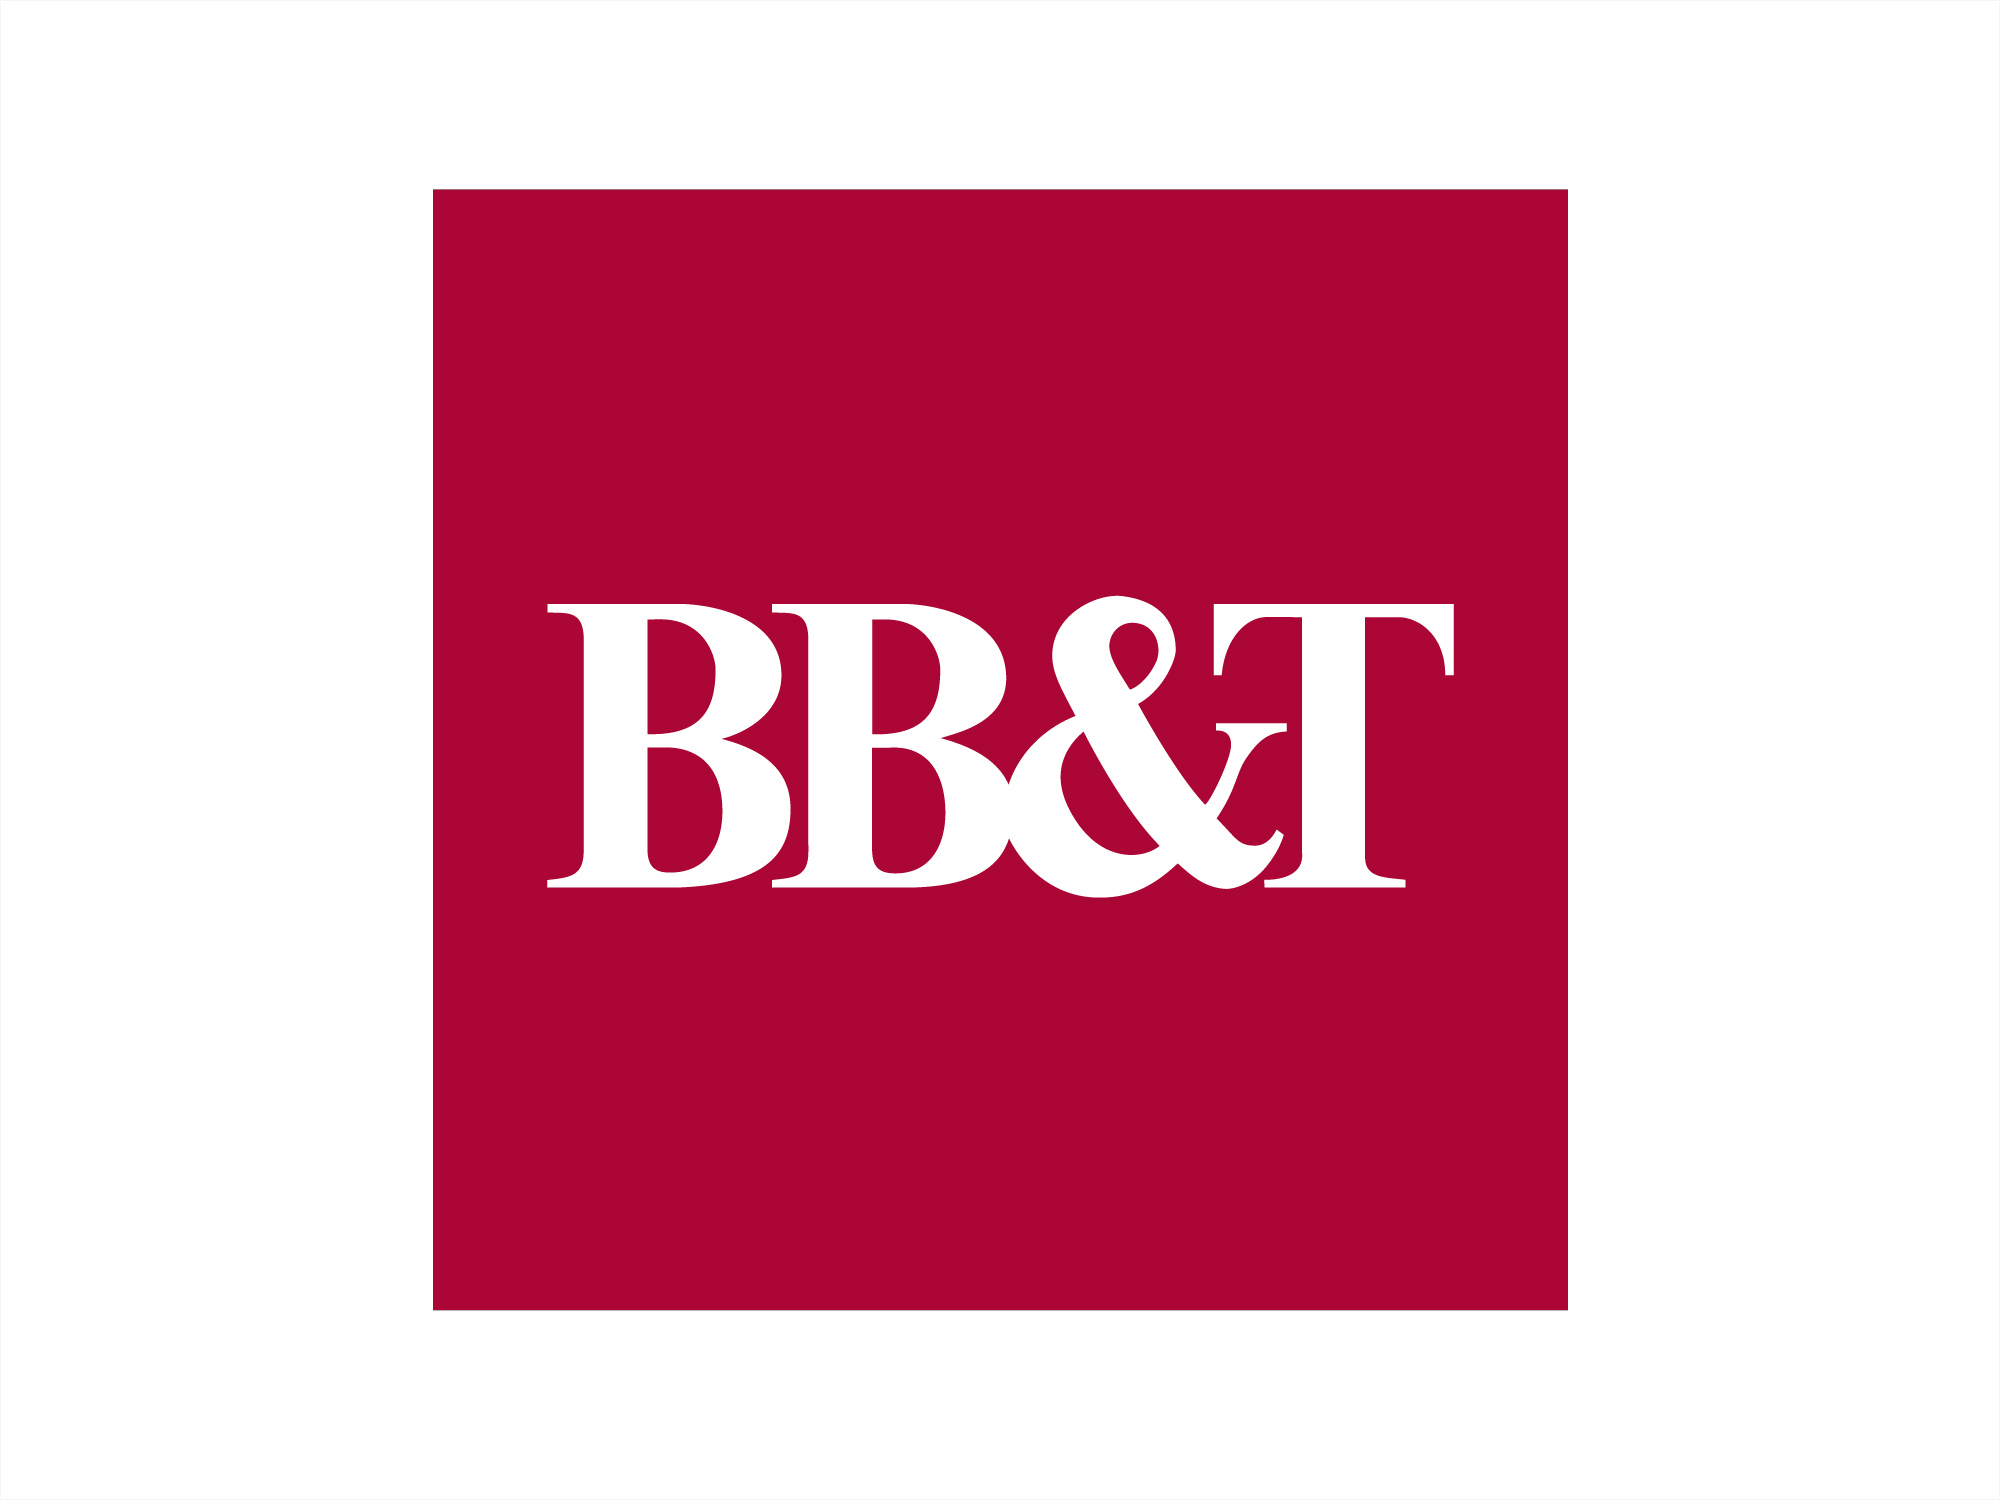 BB&T services offline as customers experience major problems